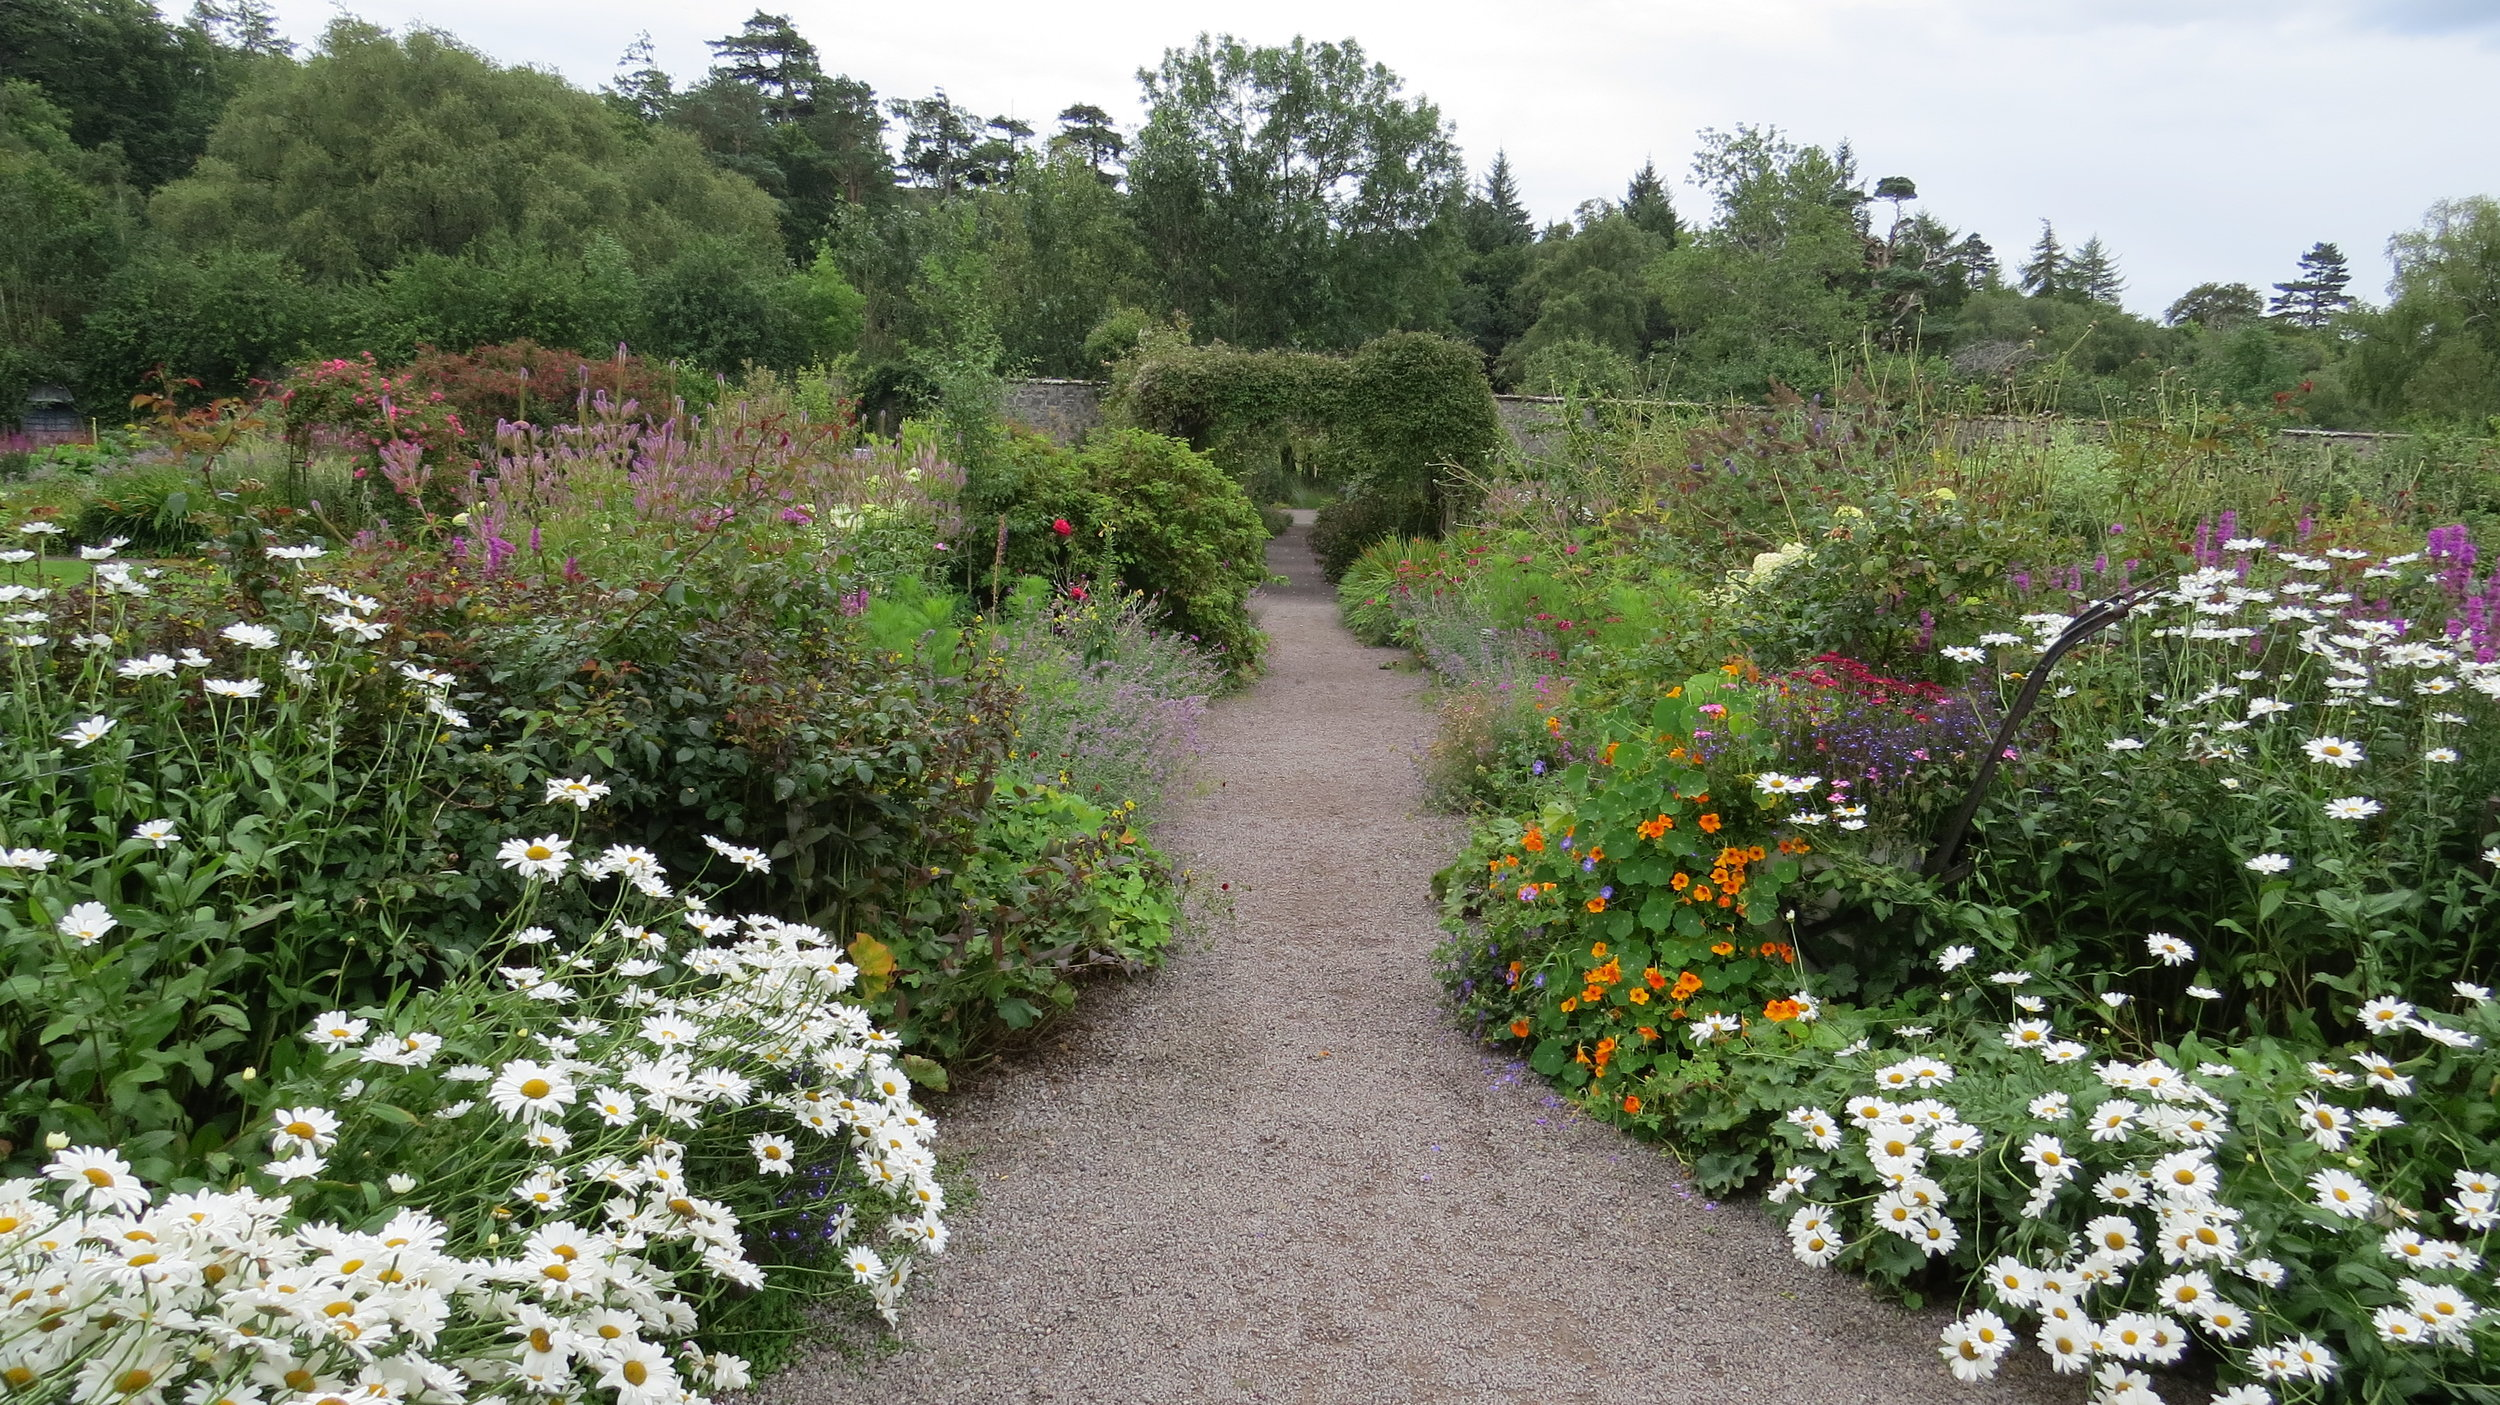 Applecross Walled Garden